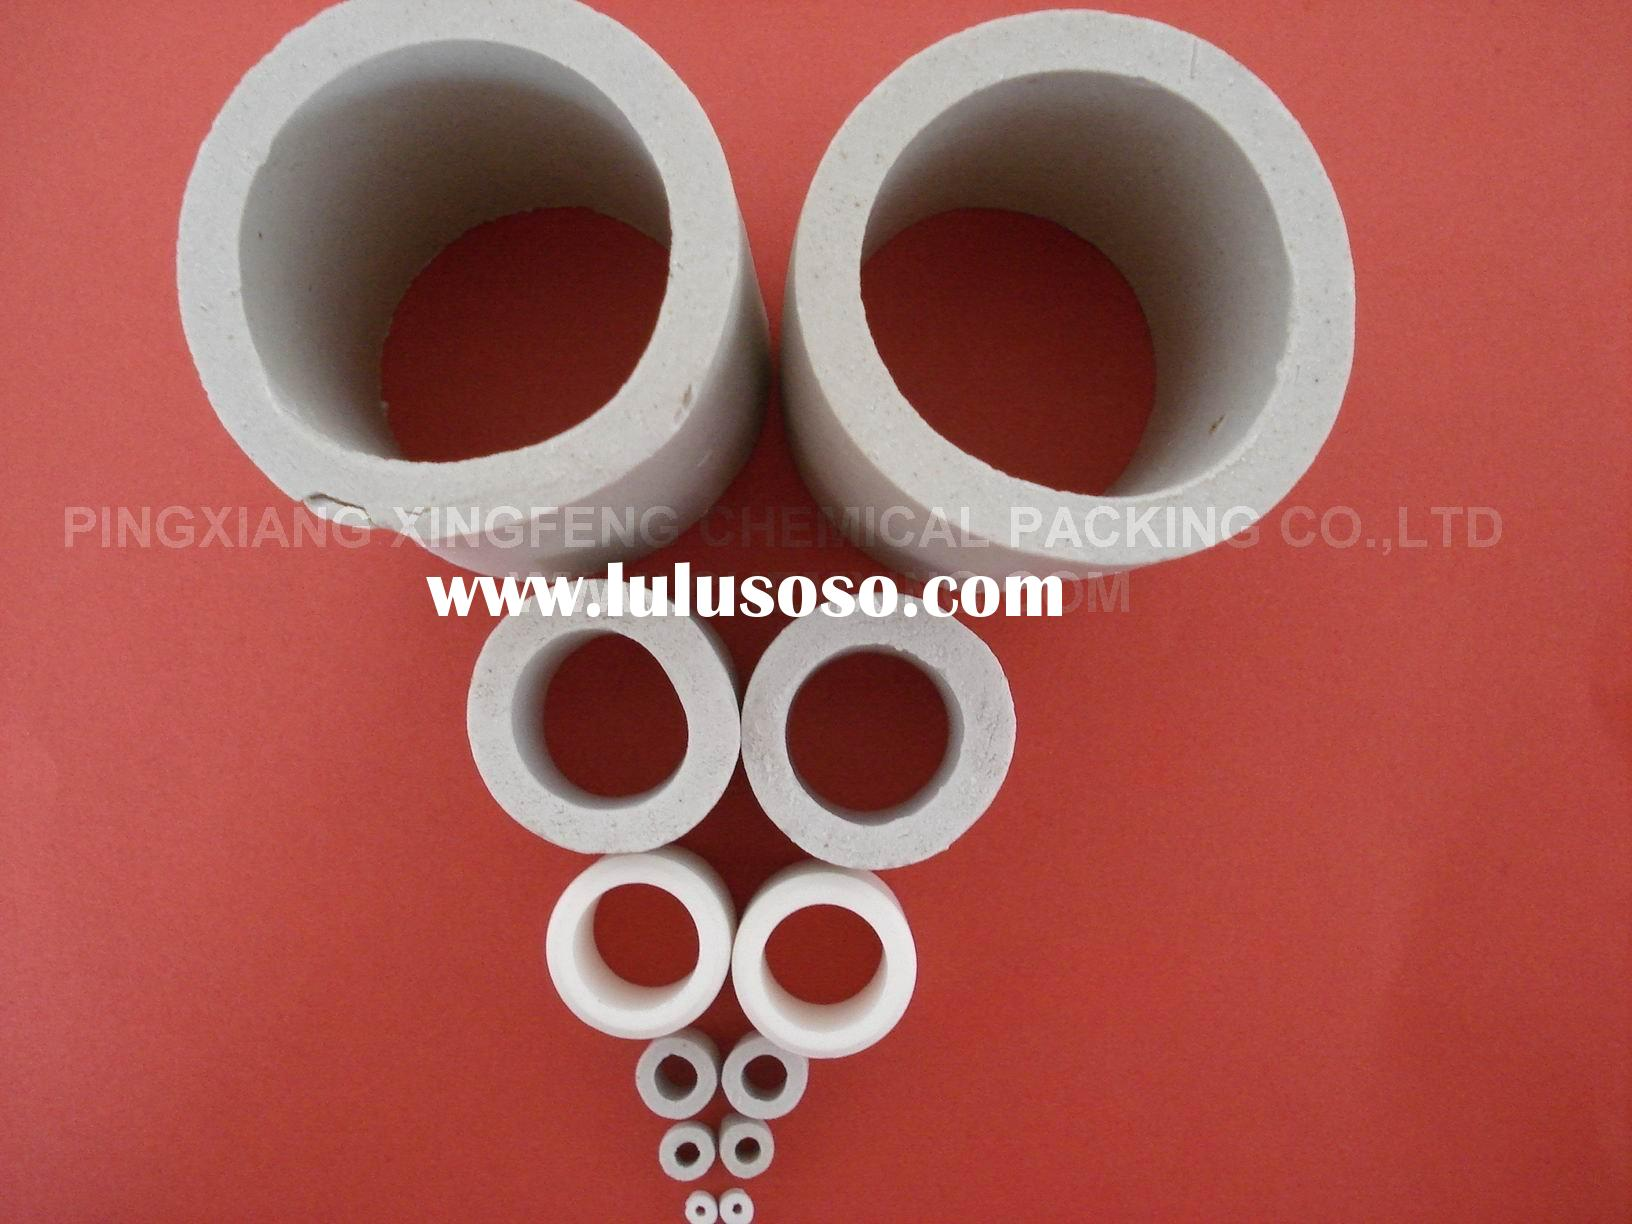 Raschig Ring Ring Raschig Ring Ring Manufacturers In